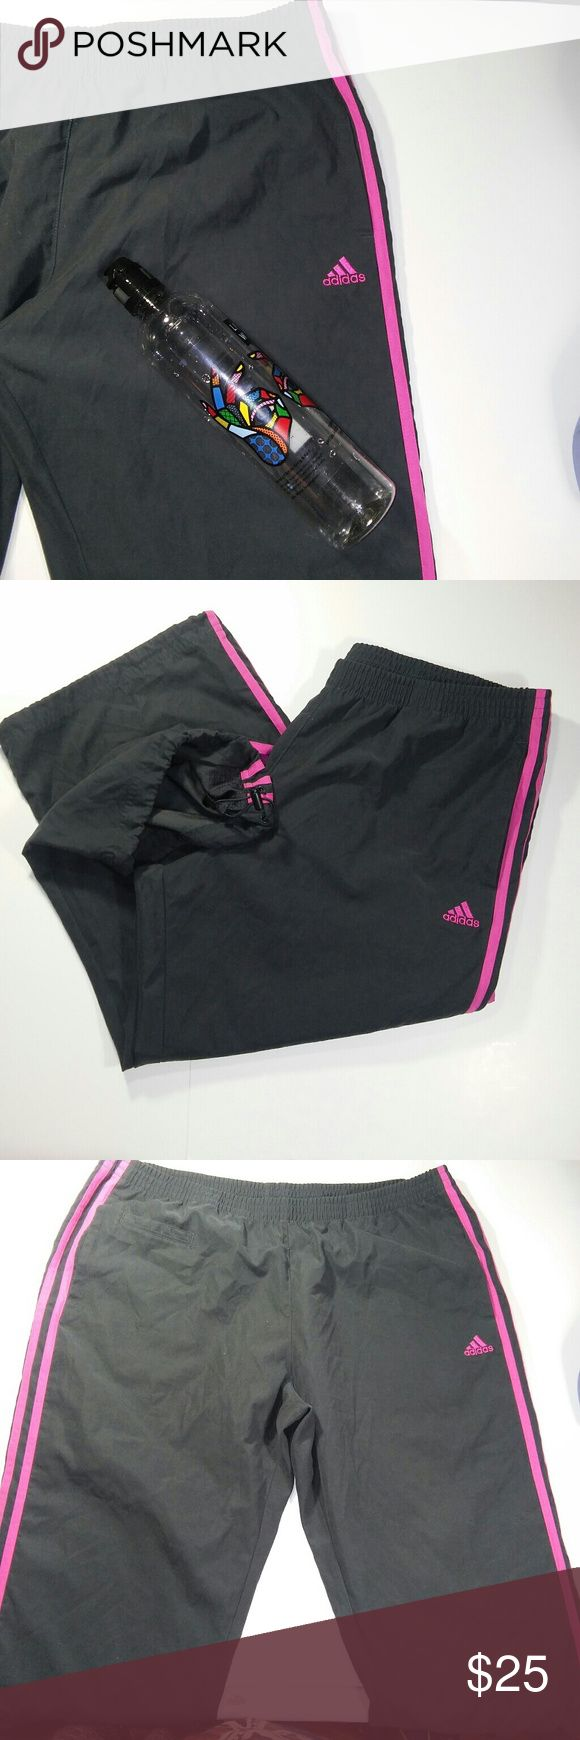 "Adidas Training Track Pants Brand:Adidas Color:pink/grey Size:L  Length:32"" Waist: 36"" Inseam: 23""  *NO LOW BALL OFFERS  *Will Review or Consider all offers *BUNDLE and $ave More *Top Rated Seller *Fast Shipment Always awesome packaging Adidas Pants Track Pants & Joggers"